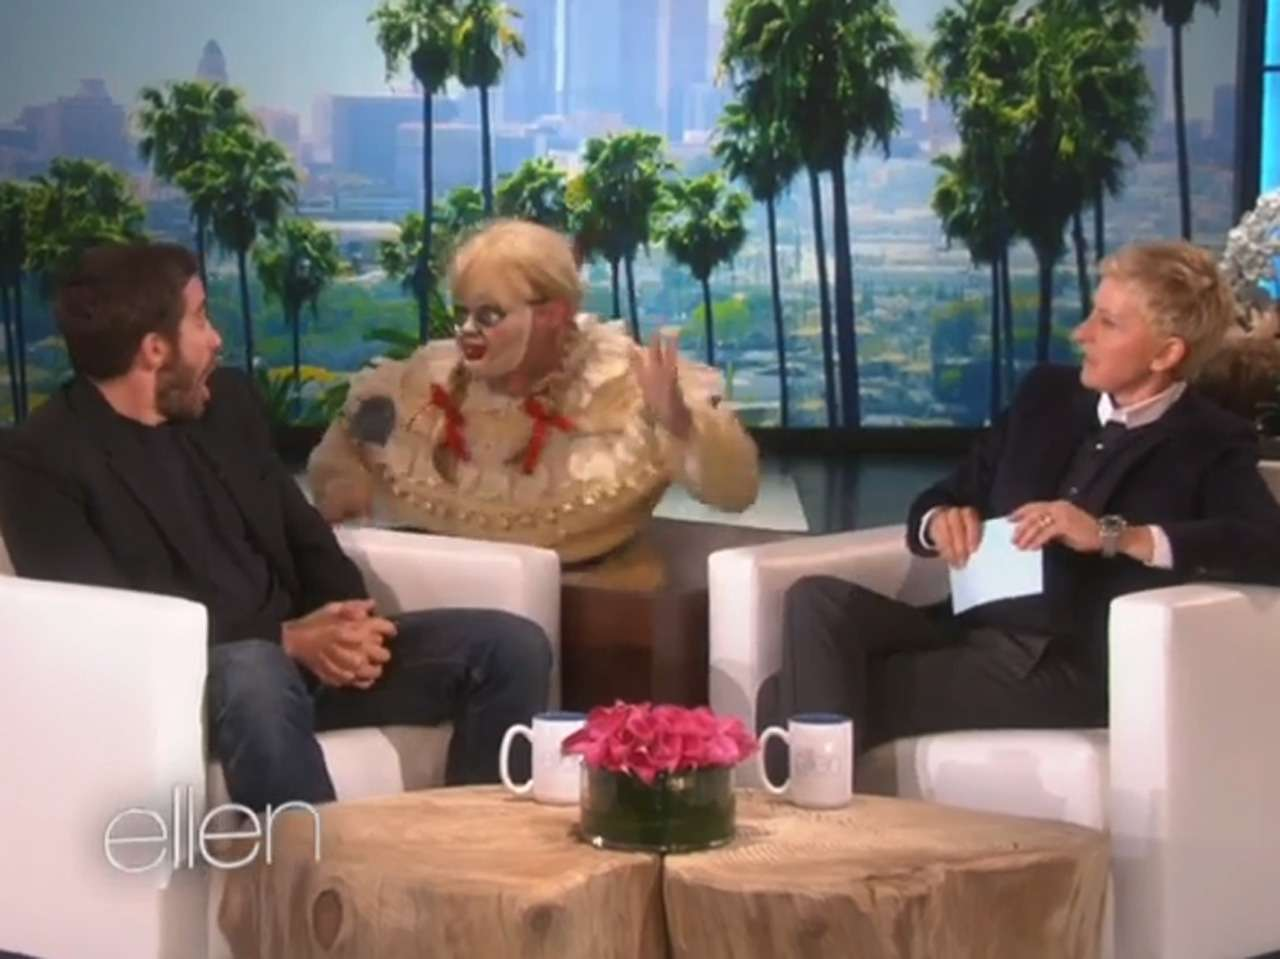 Foto: YouTube /TheEllenShow